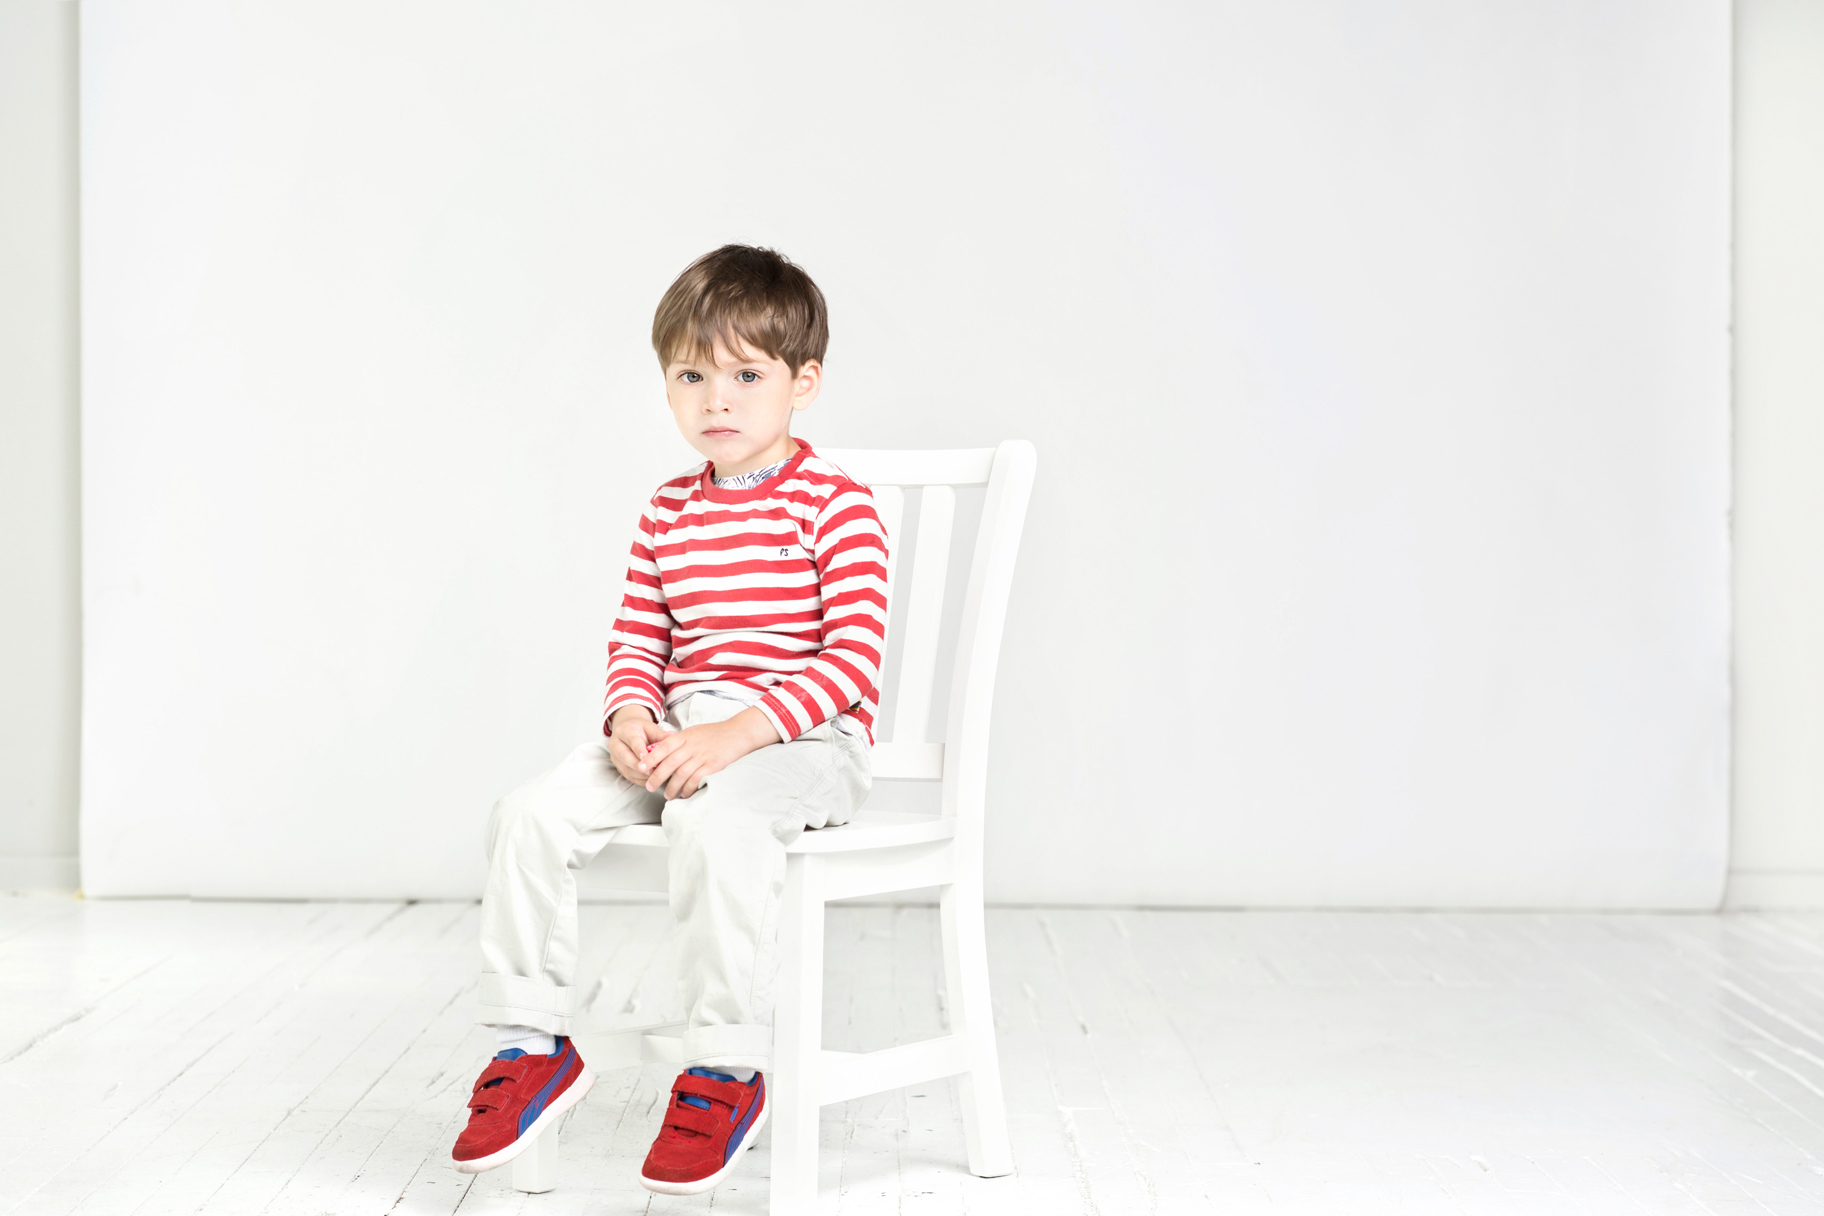 boy sitting on chair on white sweep in studio with red striped shirt